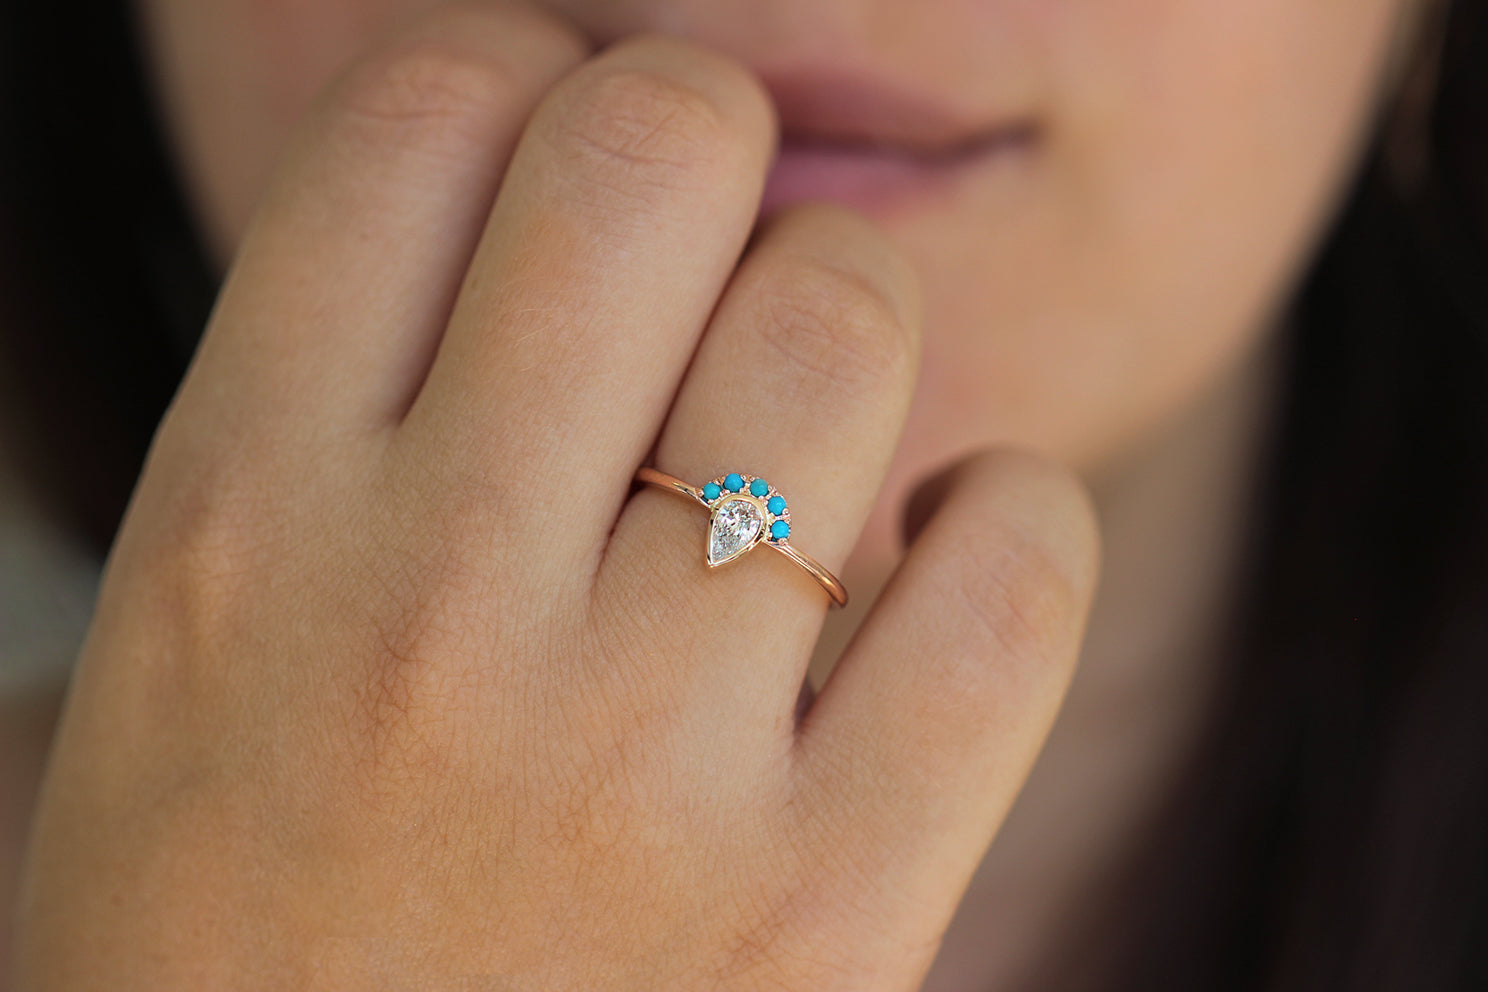 Pear Cut Diamond Ring - Turquoise Crown Diamond Ring Front View on Hand